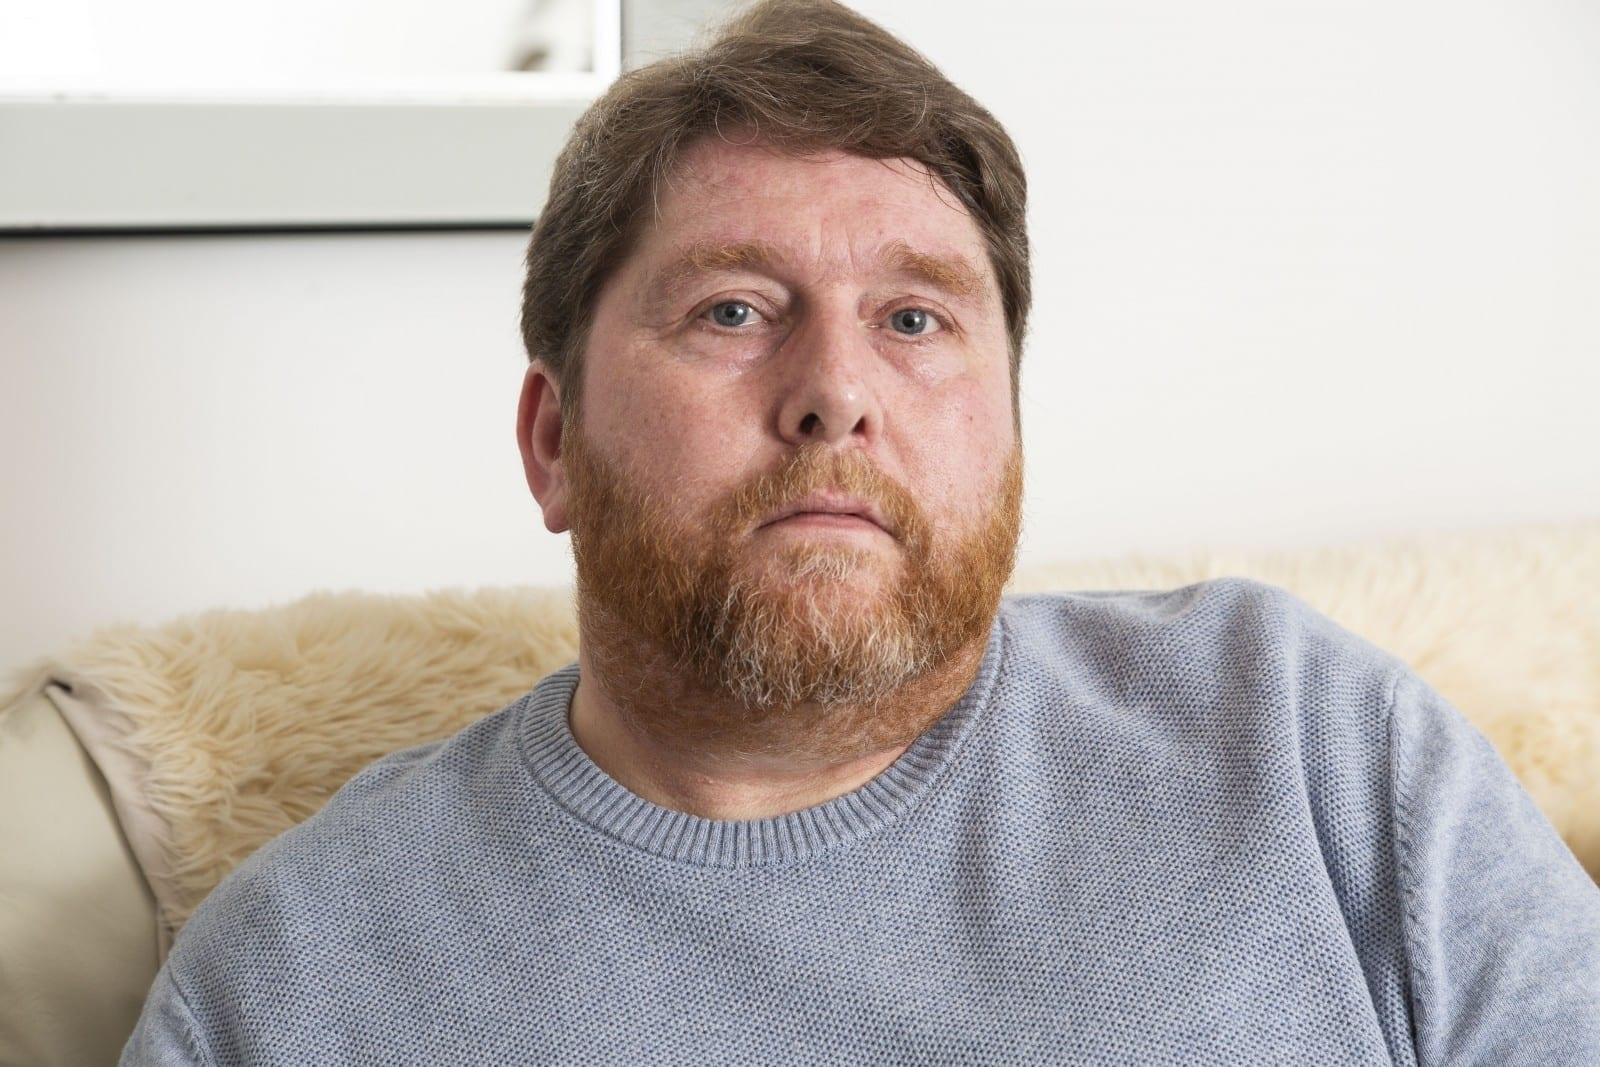 'I Can Barely Do Anything For Myself' – Man Has Lost 80% Of The Movement In His Neck – After Supermarket Fridge Door Crashed Down On Top Of Him